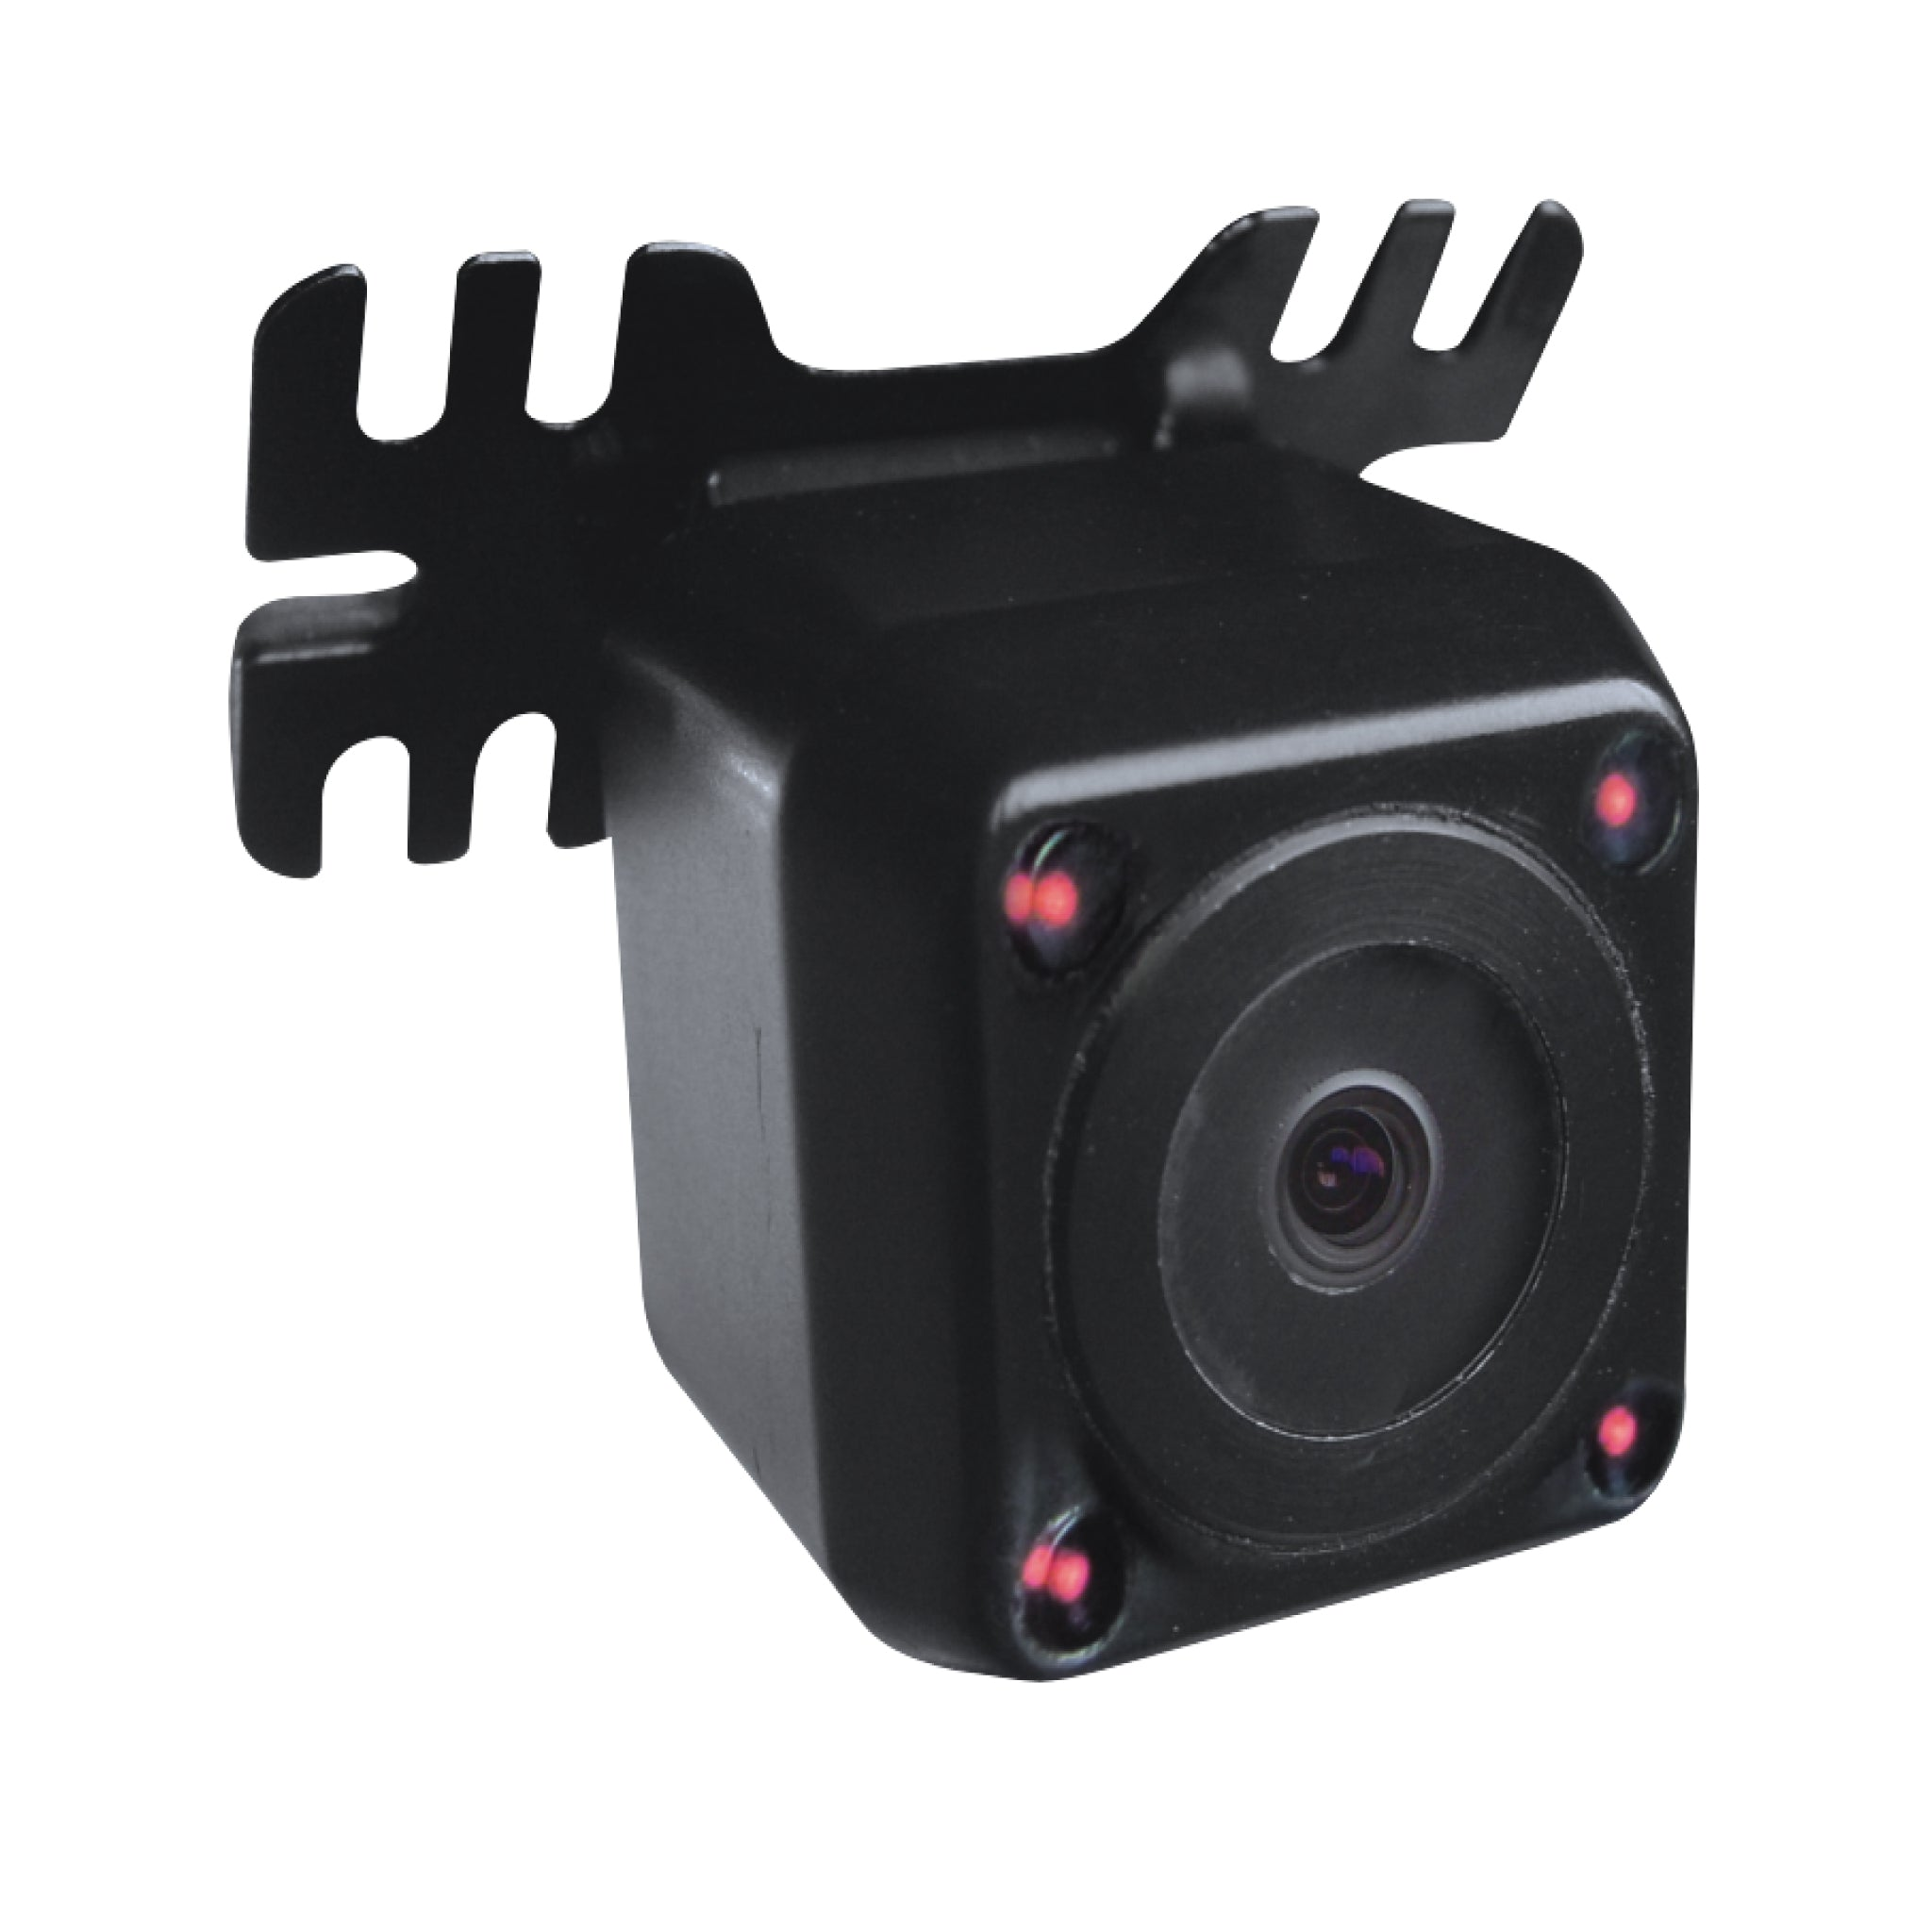 Universal Mini Camera with Night Vision Works in Complete Darkness ...